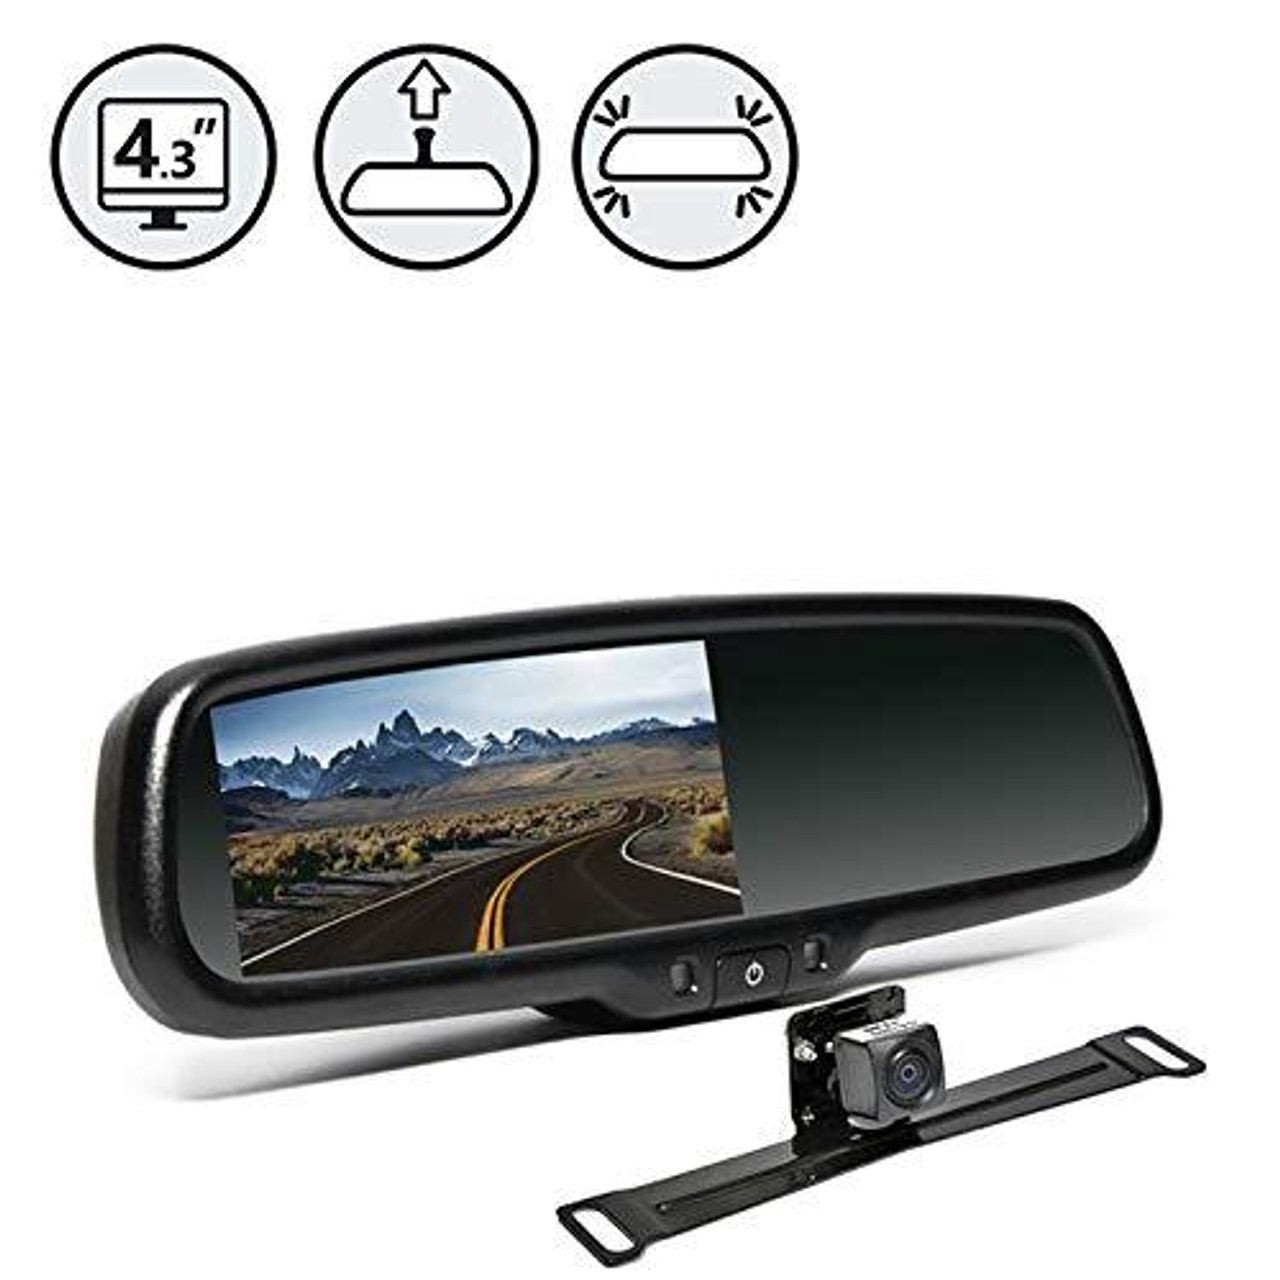 Backup Camera System with Replacement Mirror Display, 33' Cable